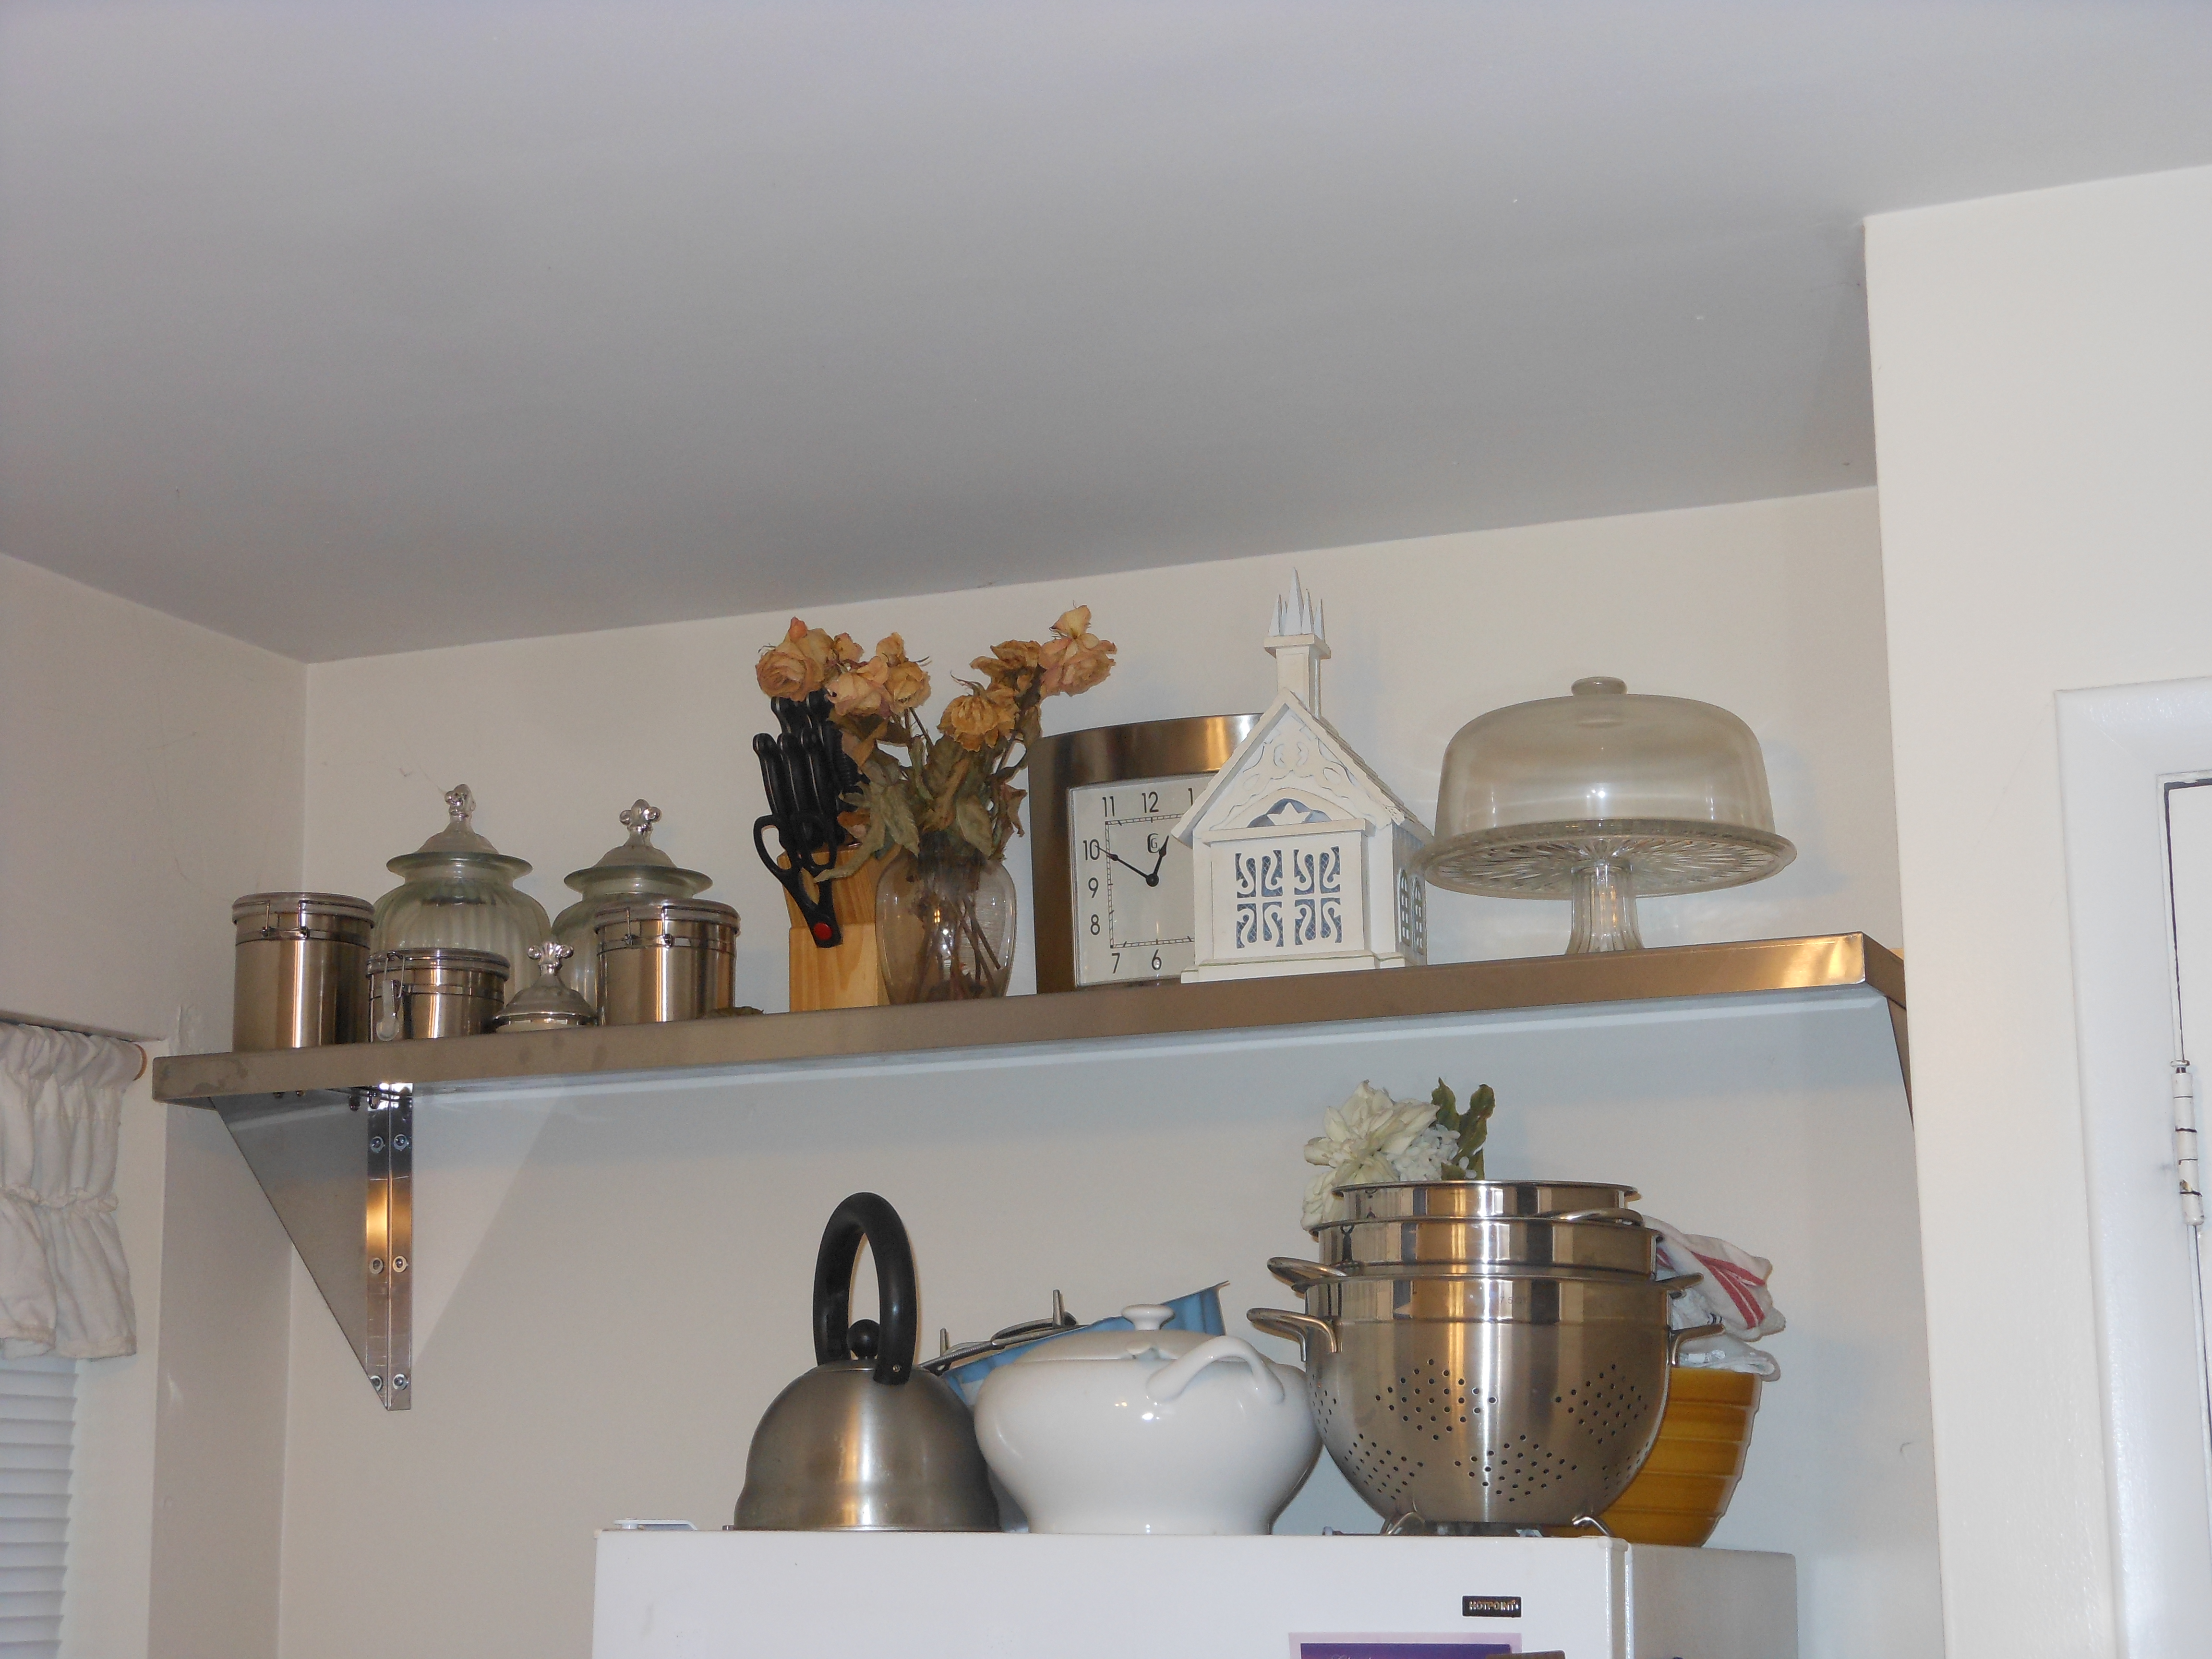 Decorative Wall Shelf For Kitchen : Diy decorate your kitchen and stuff ladies